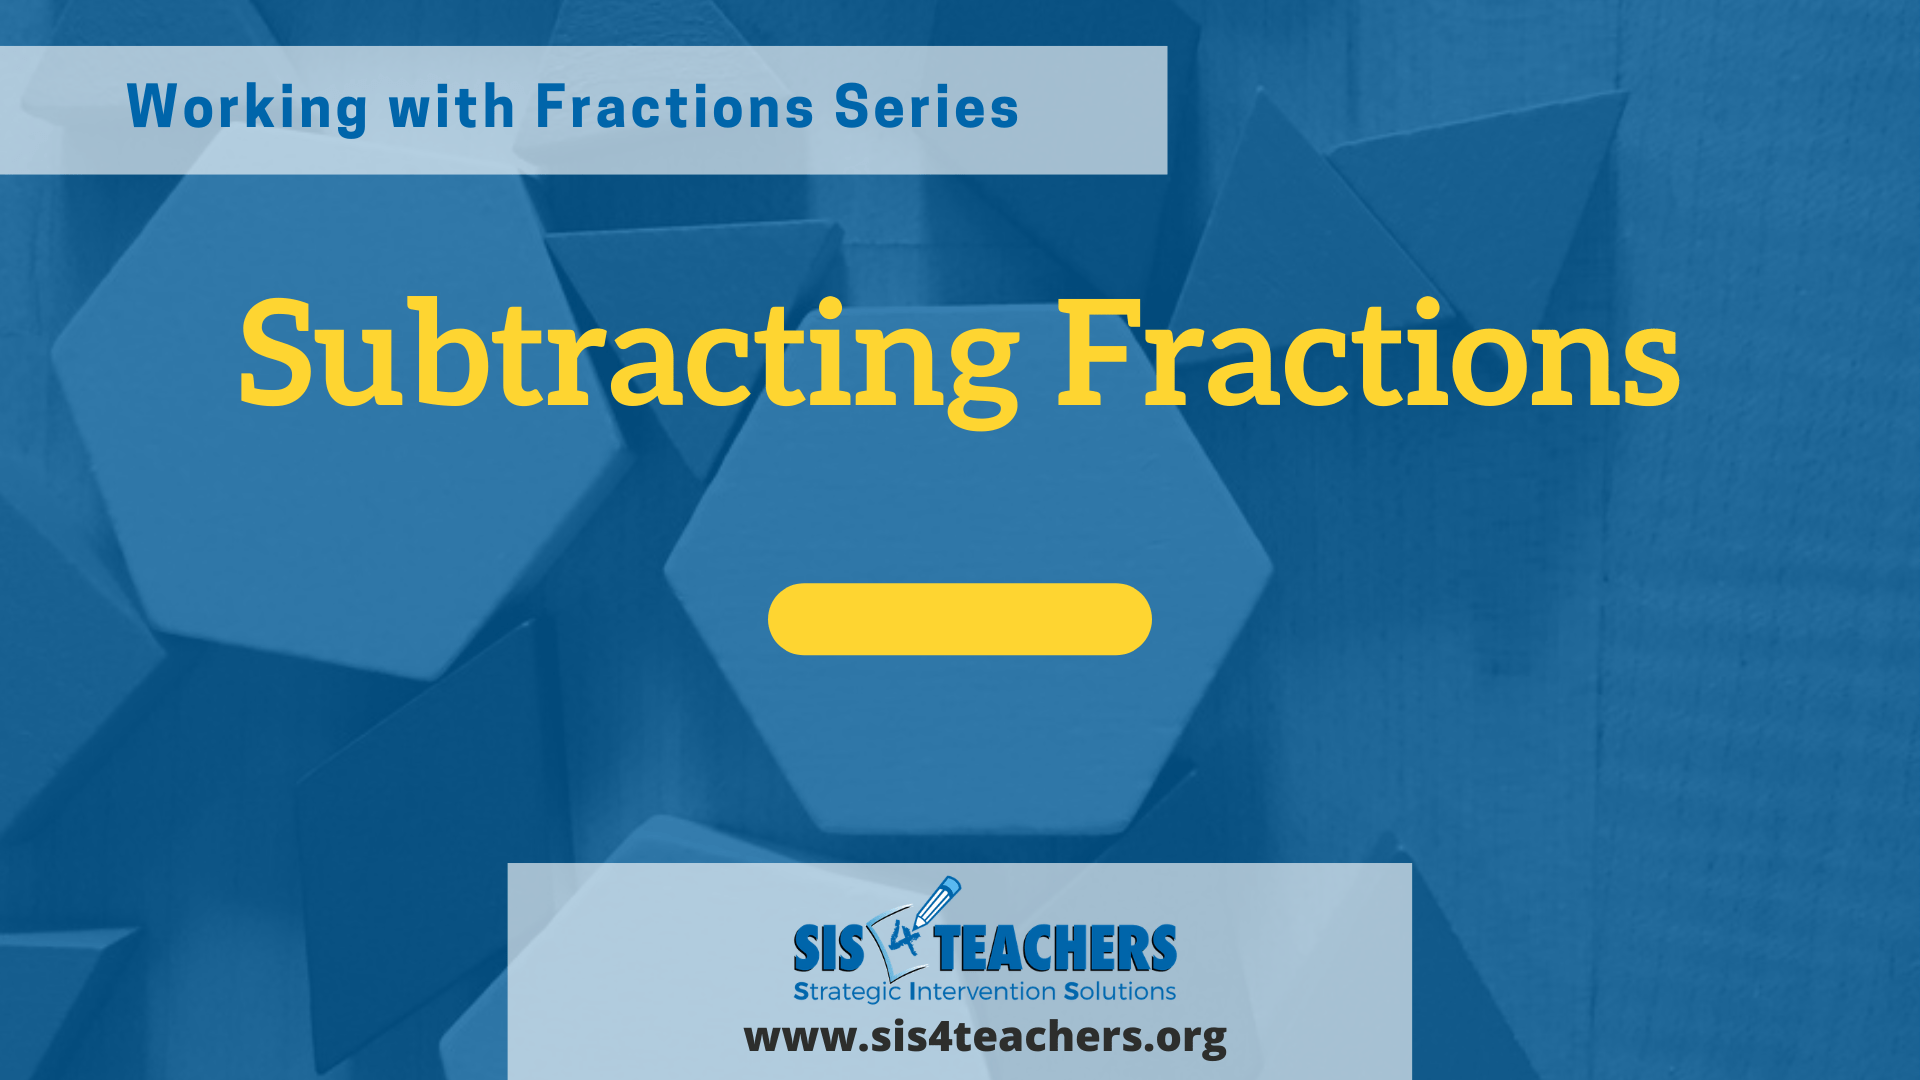 Working with Fractions: Subtracting Fractions